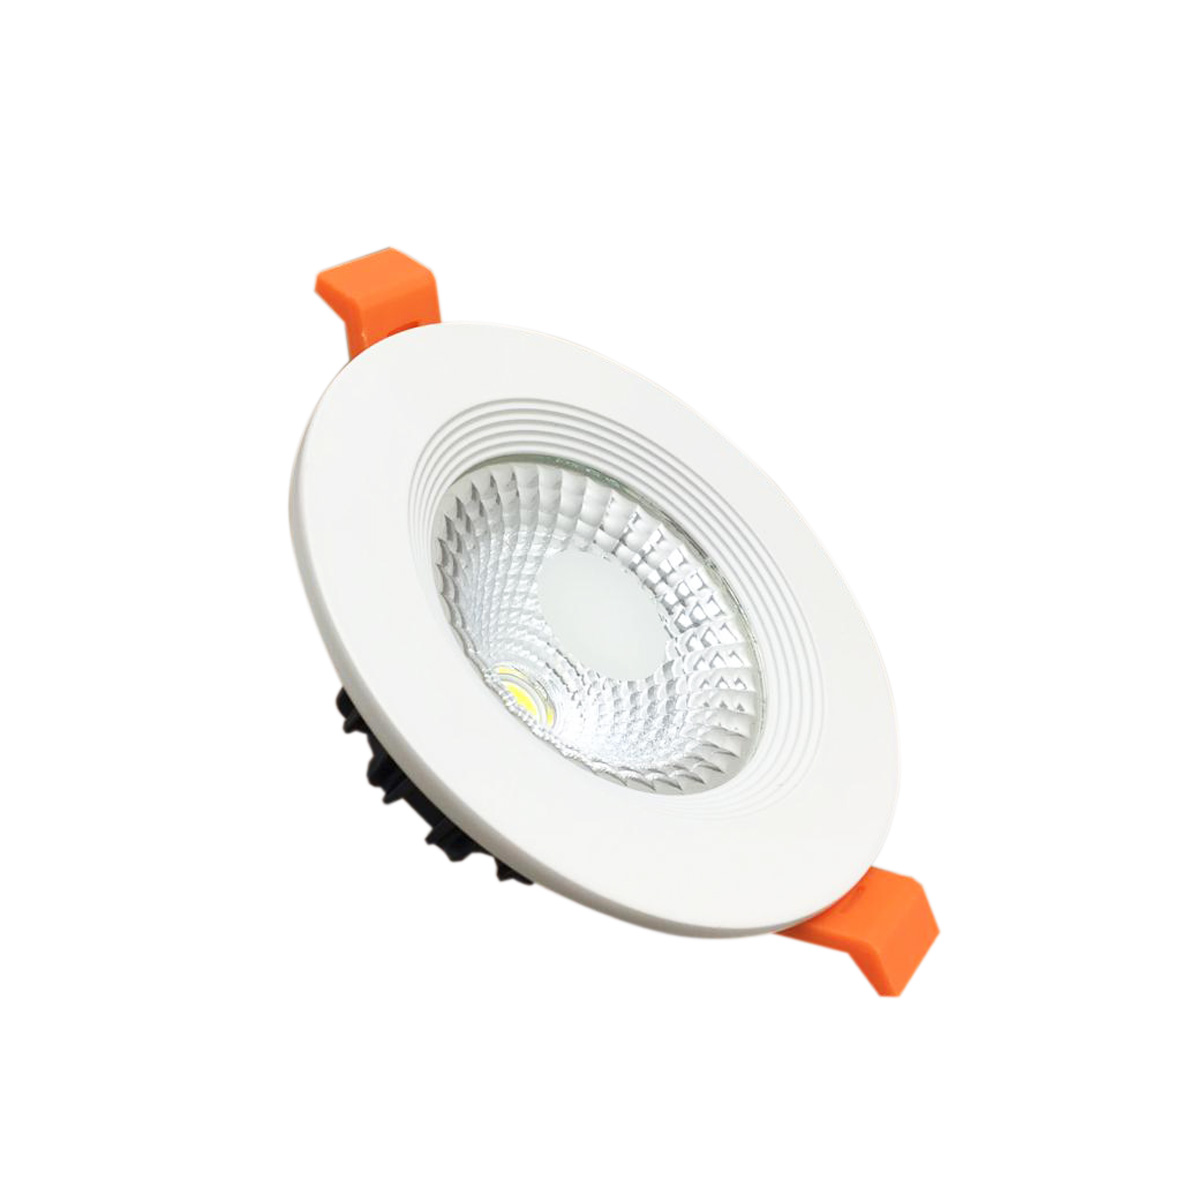 Spot LED encastrable 5W diamètre de 100 mm F. I. 70-120 mm transformateur inclus